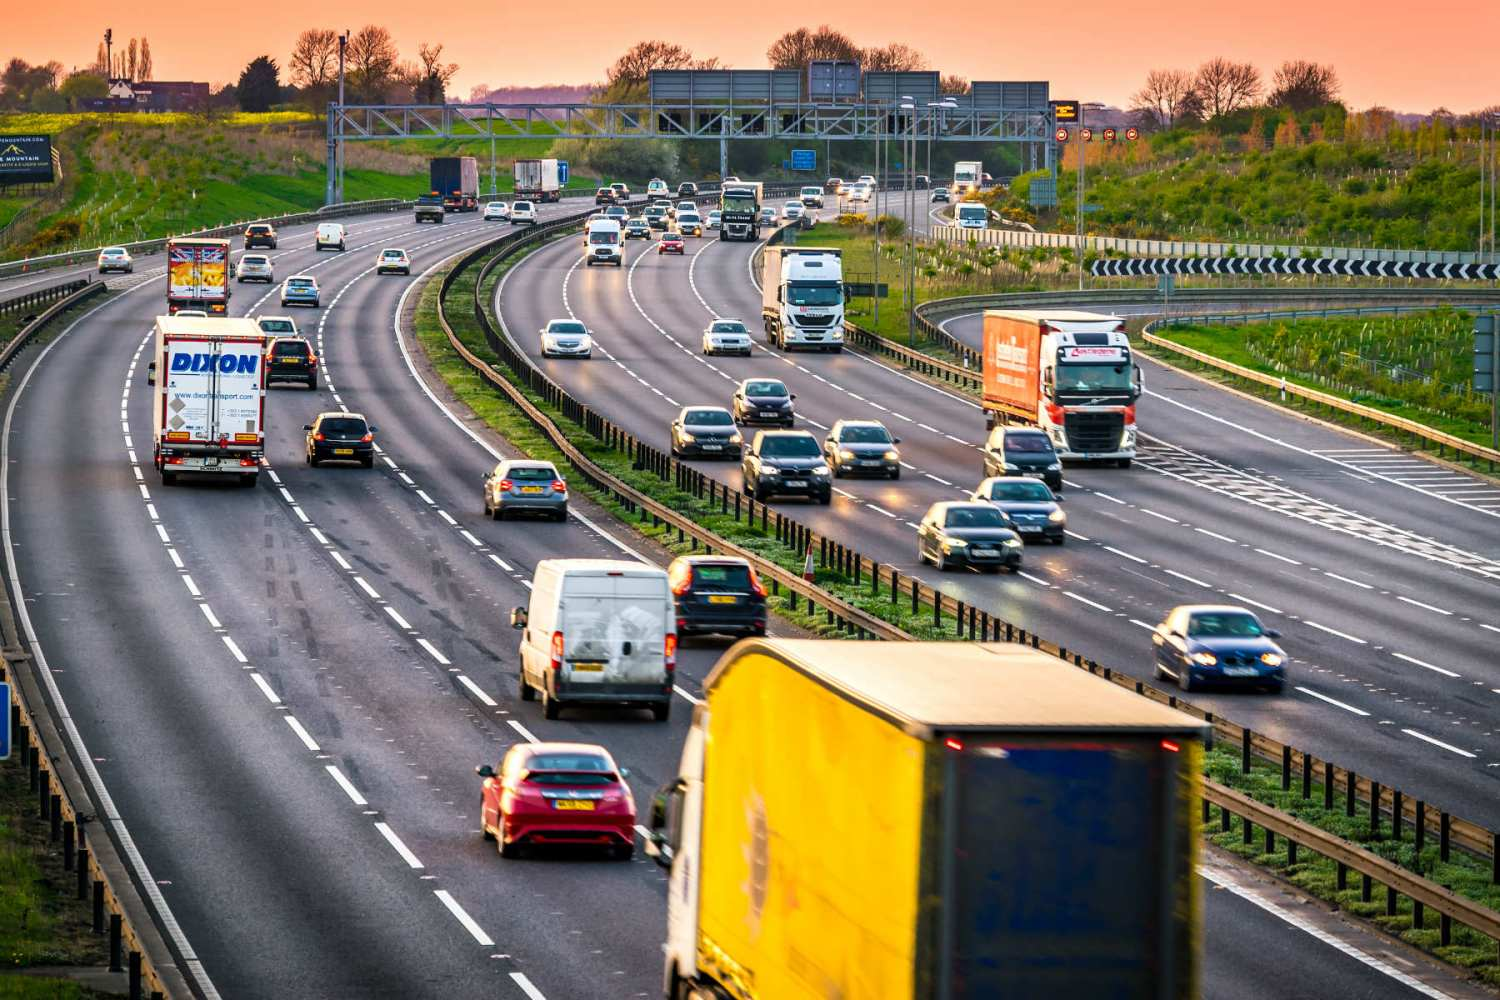 We're a nation of lane-hoggers: just 1 in 4 drivers use the inside lane even when it's EMPTY